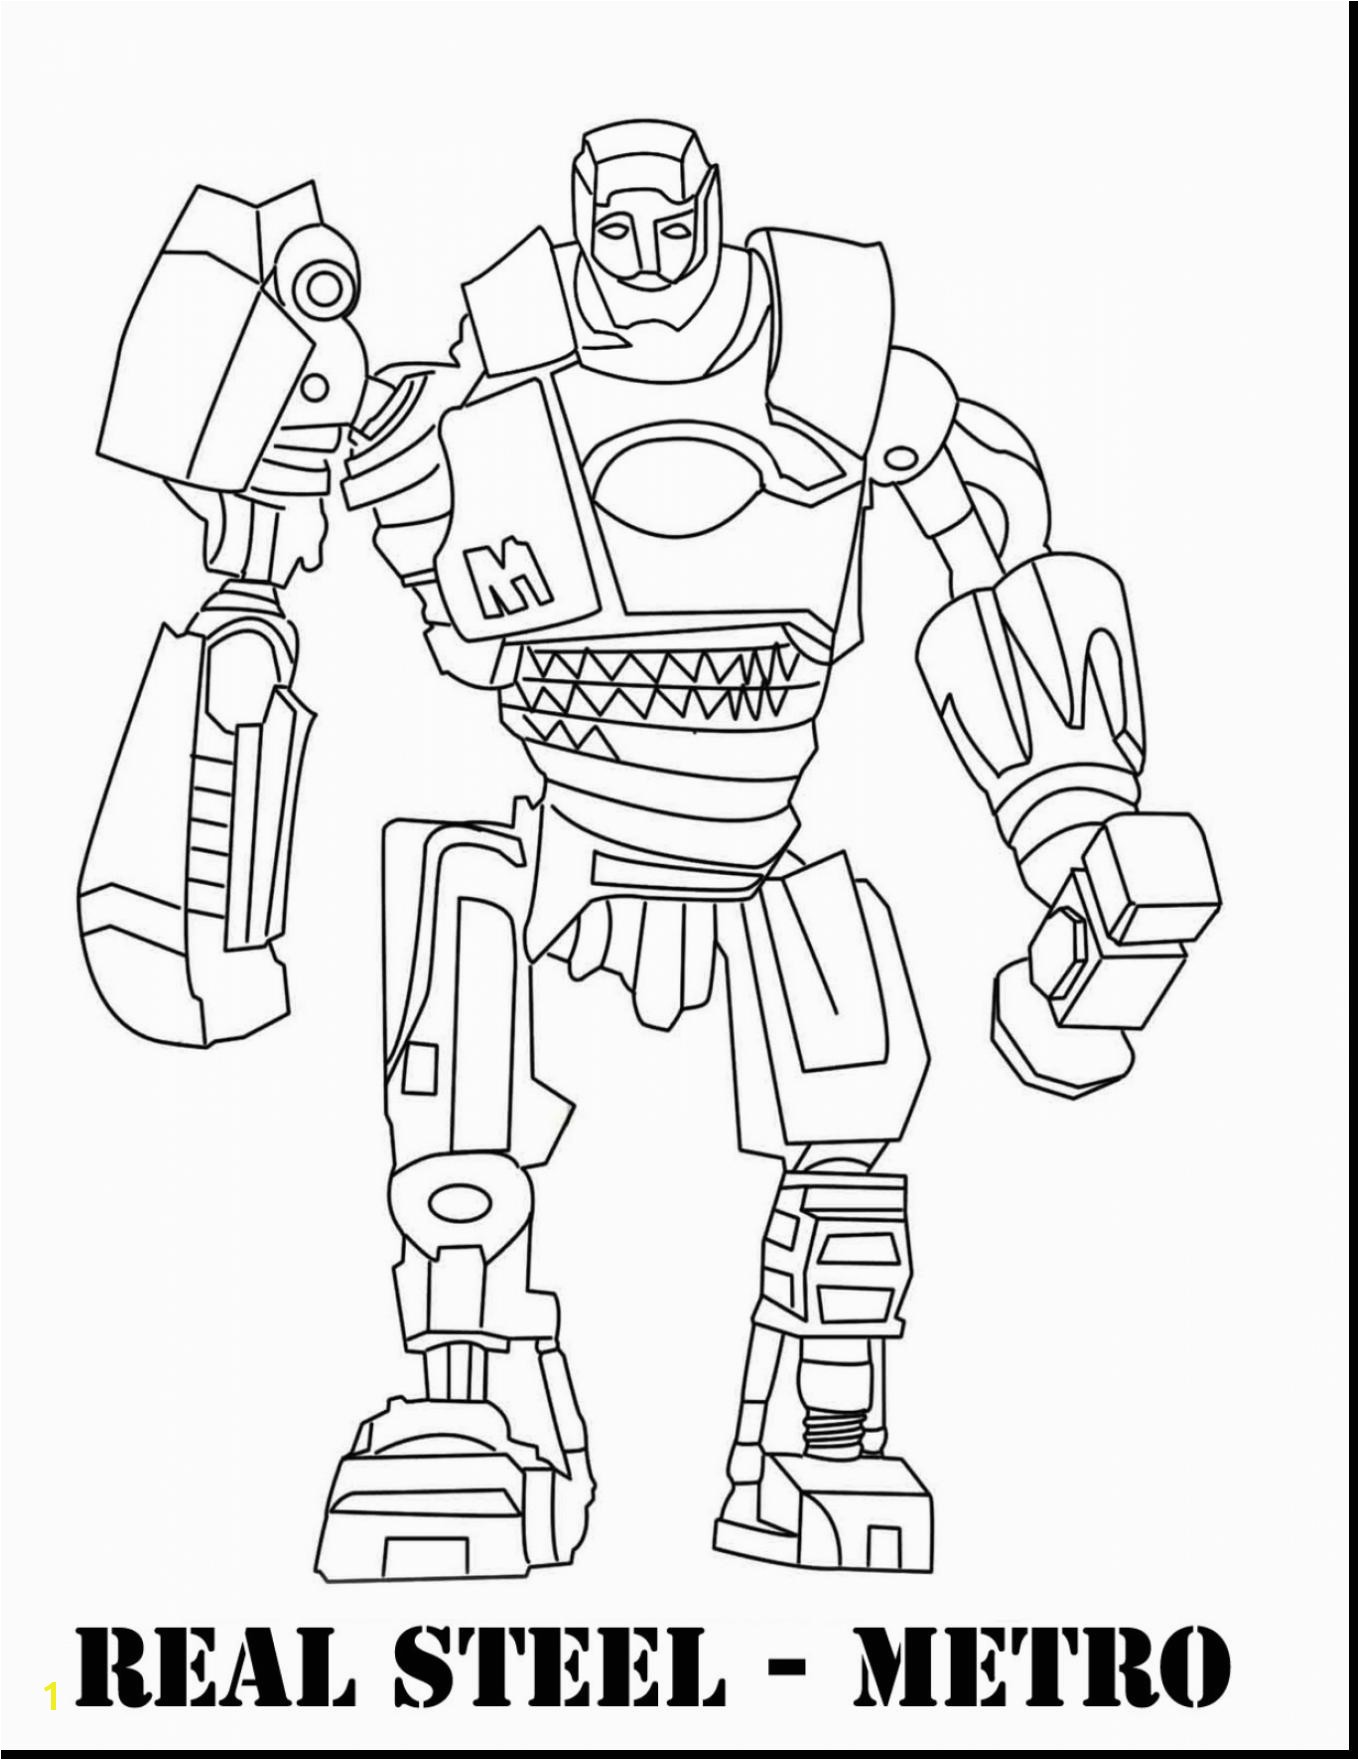 Real Steel Robot Coloring Pages Real Steel Coloring Pages